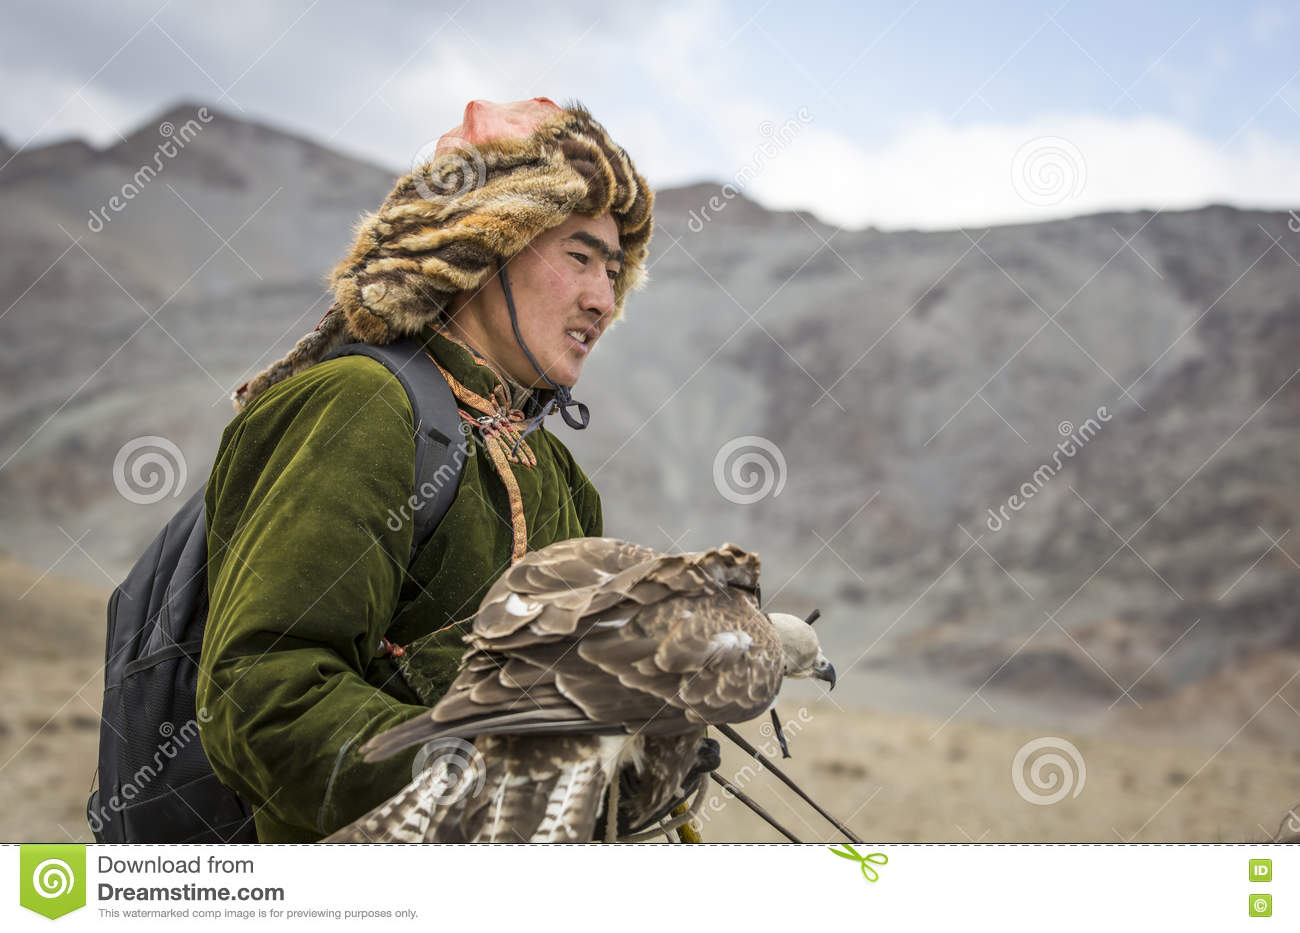 mongolian-nomad-eagle-hunter-his-eagle-b